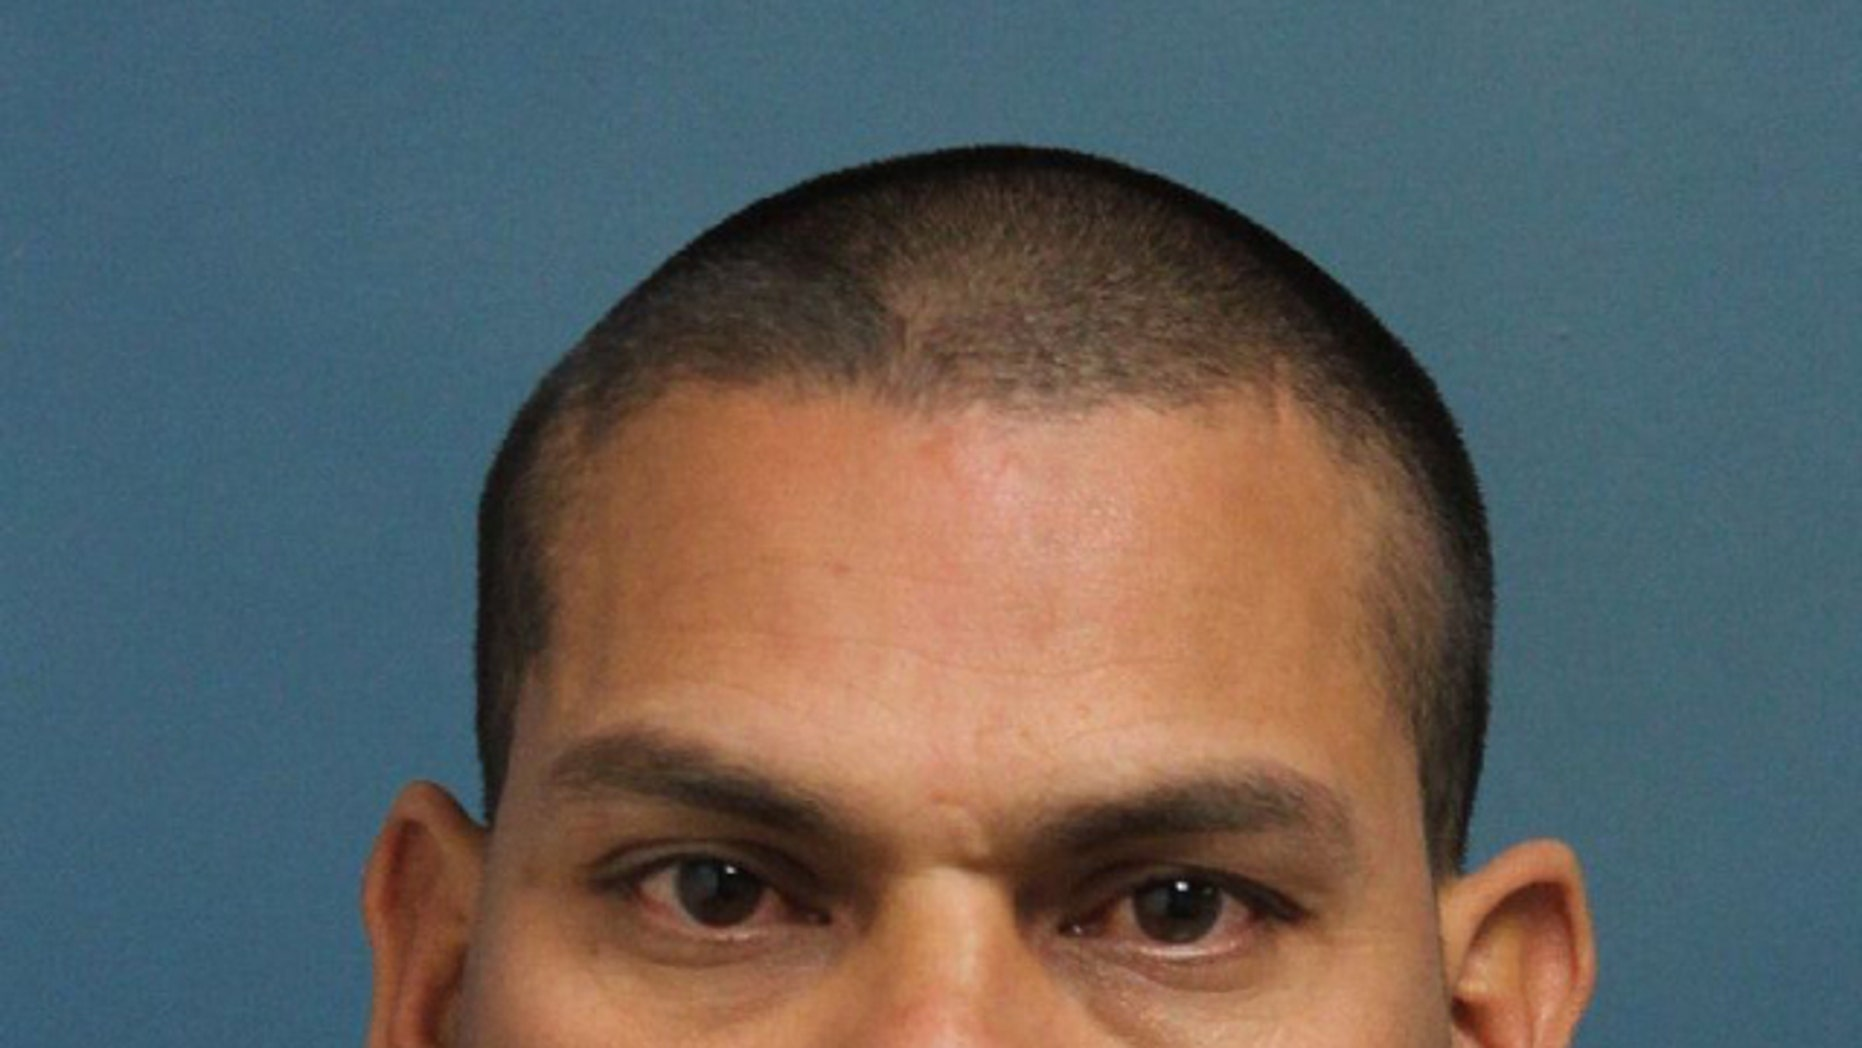 Macario Cerda, 39, was sentenced Thursday to 401 years in prison for, among other offenses, three counts of forcible rape against two victims between 2009 and 2013.